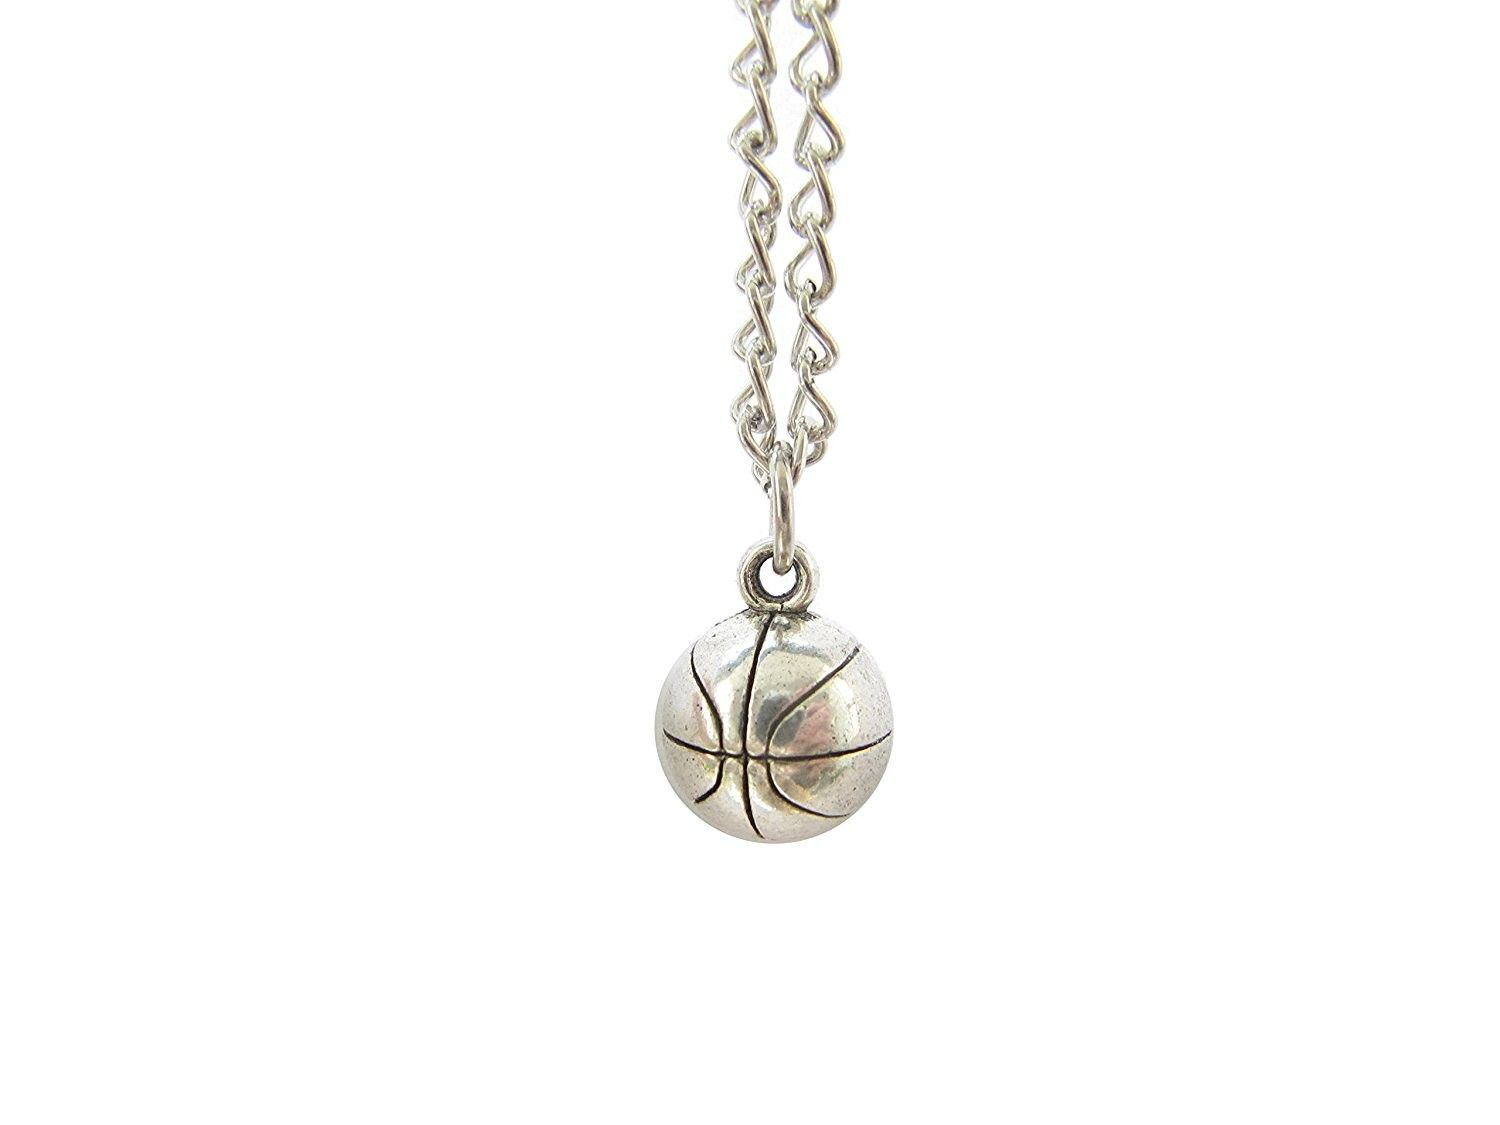 Basketball necklace pendant jewelry player chruzd in